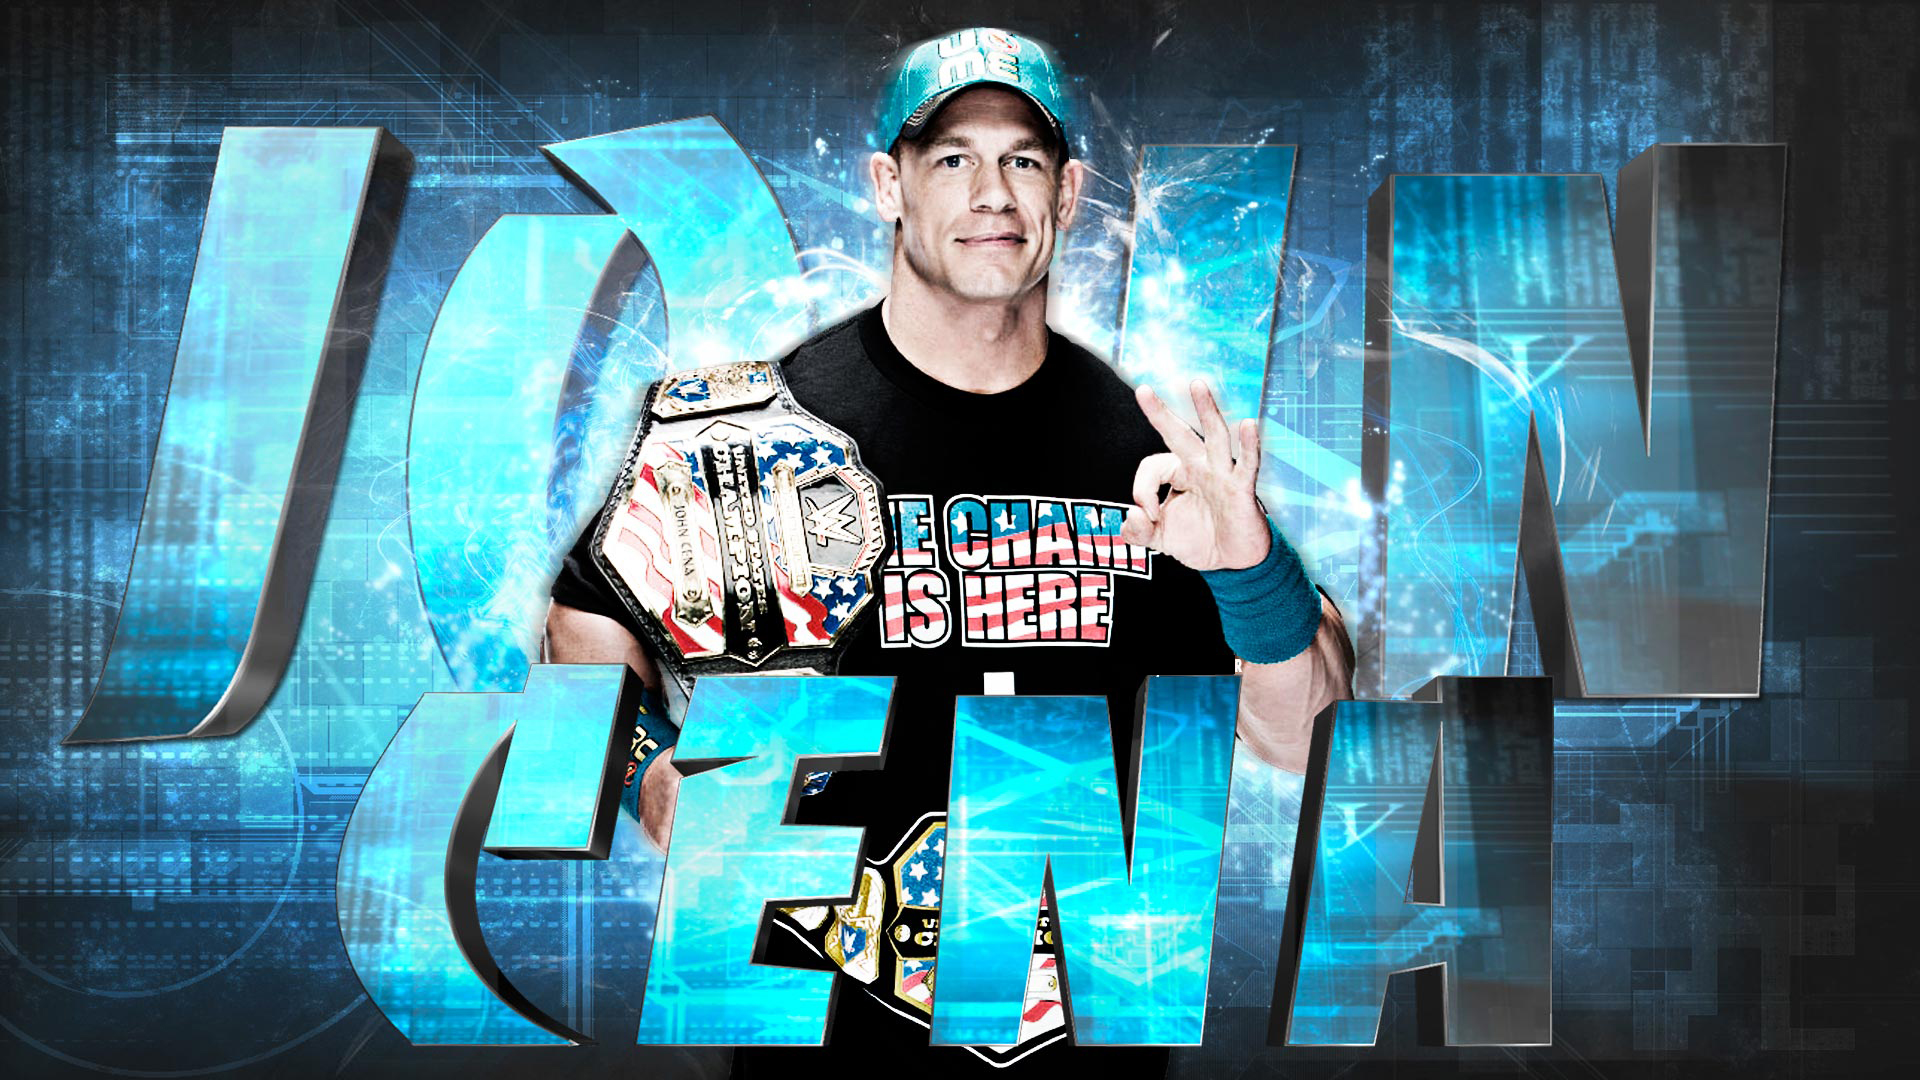 John Cena Wallpapers HD 1920x1080